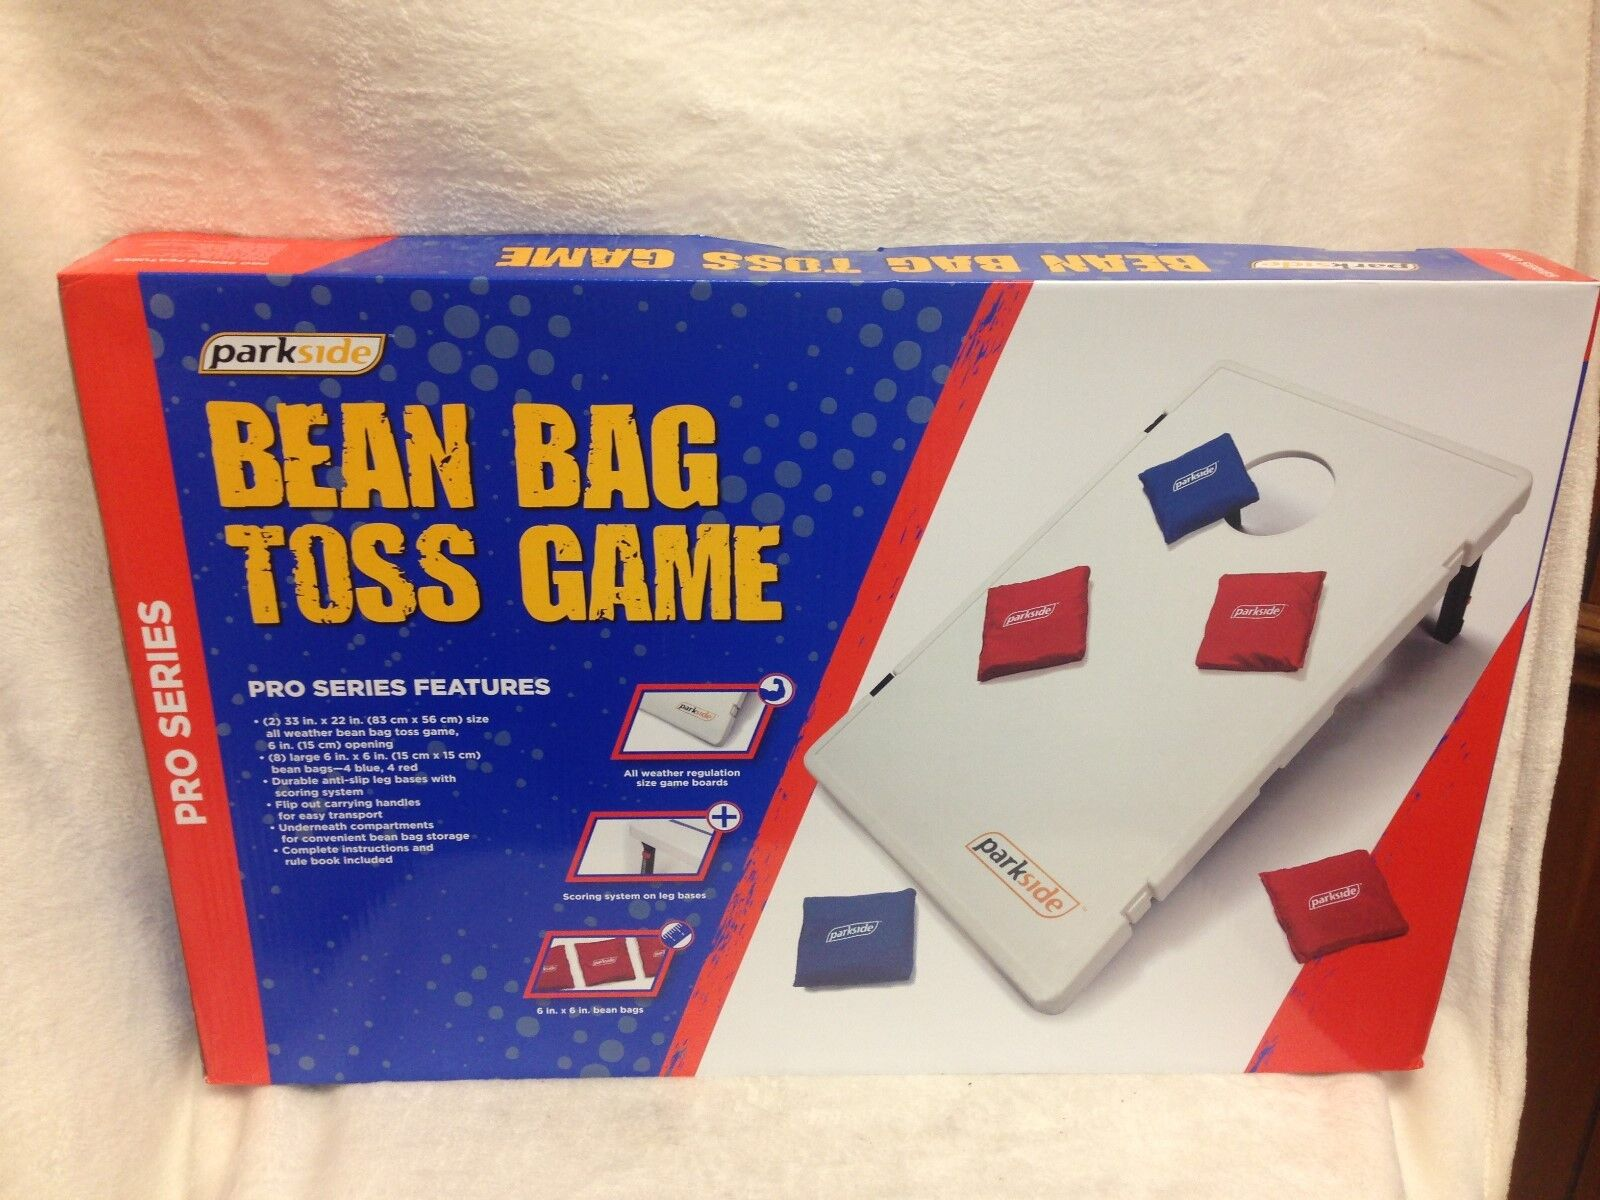 Terrific Parkside Pro Series Bean Bag Toss Game Onthecornerstone Fun Painted Chair Ideas Images Onthecornerstoneorg